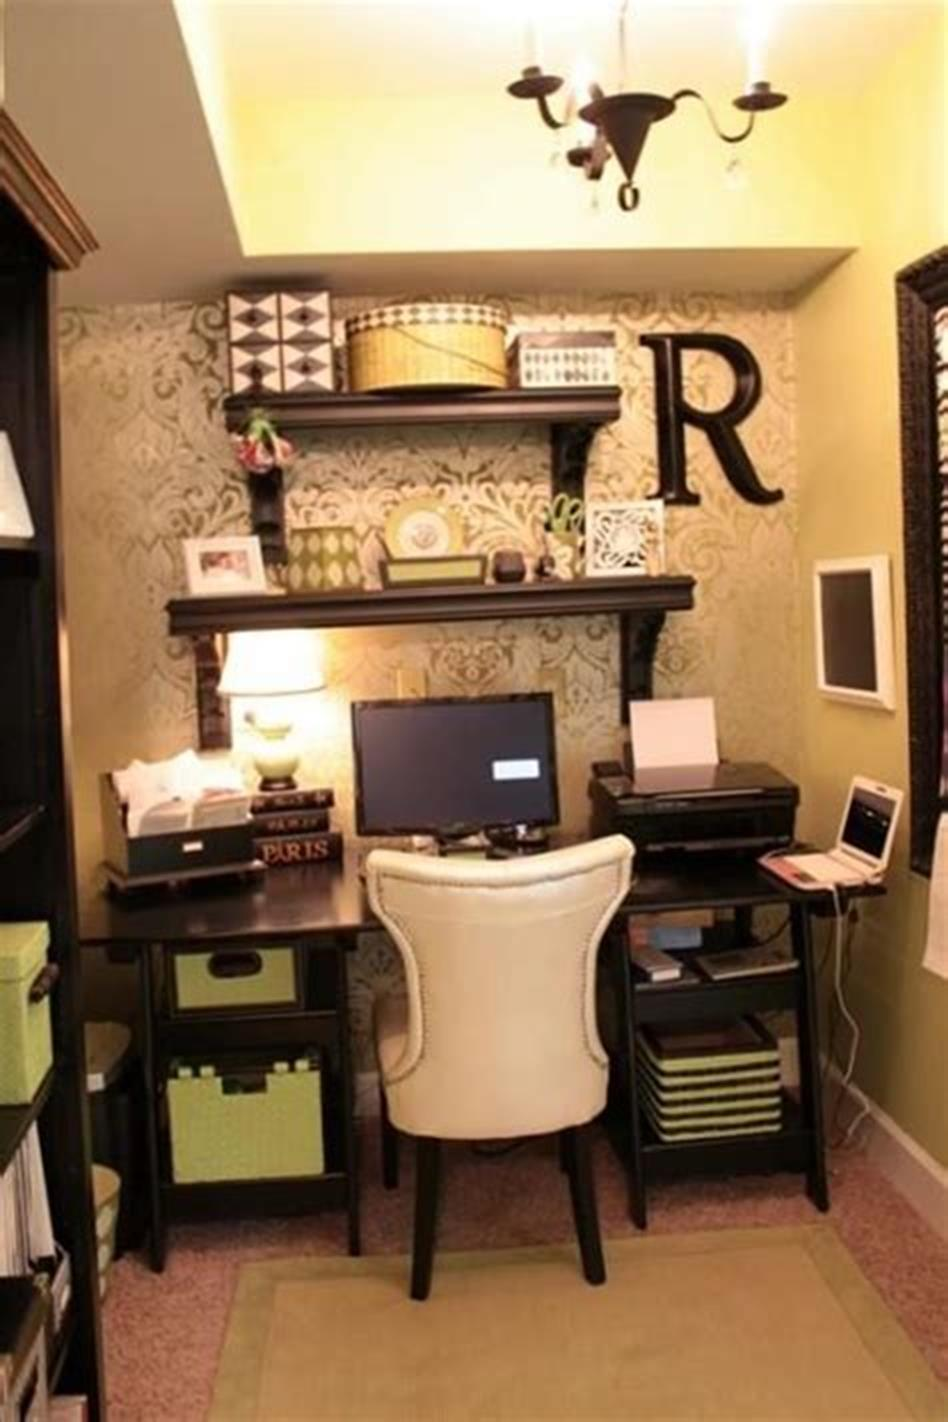 50 Best Small Space Office Decorating Ideas On a Budget 2019 44